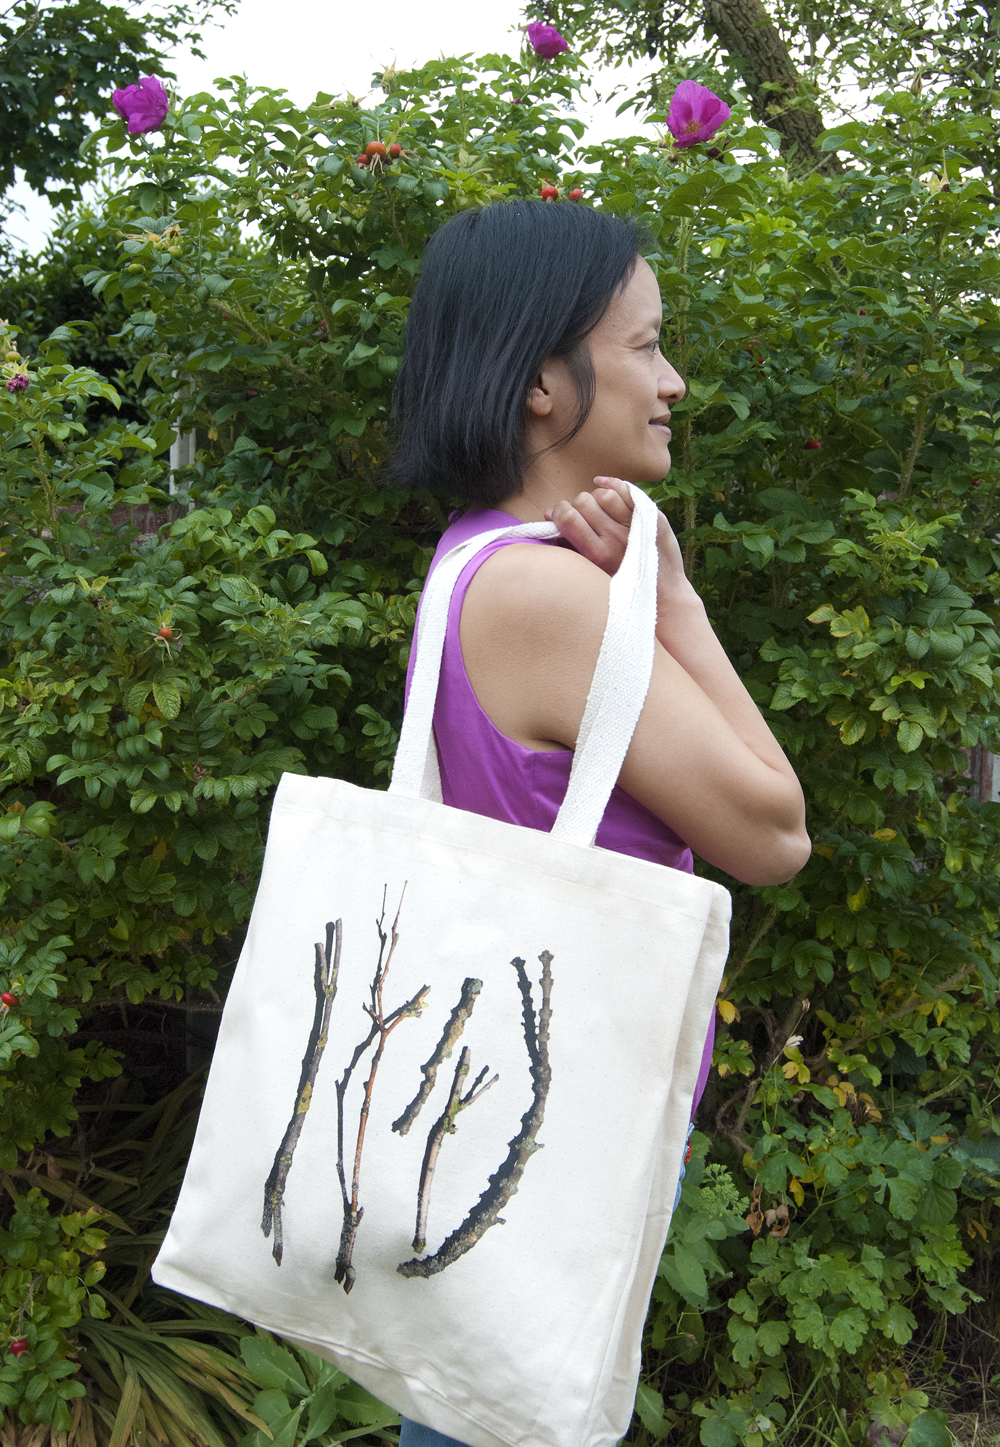 Image of woman holding a canvas bag featuring sticks and twigs design